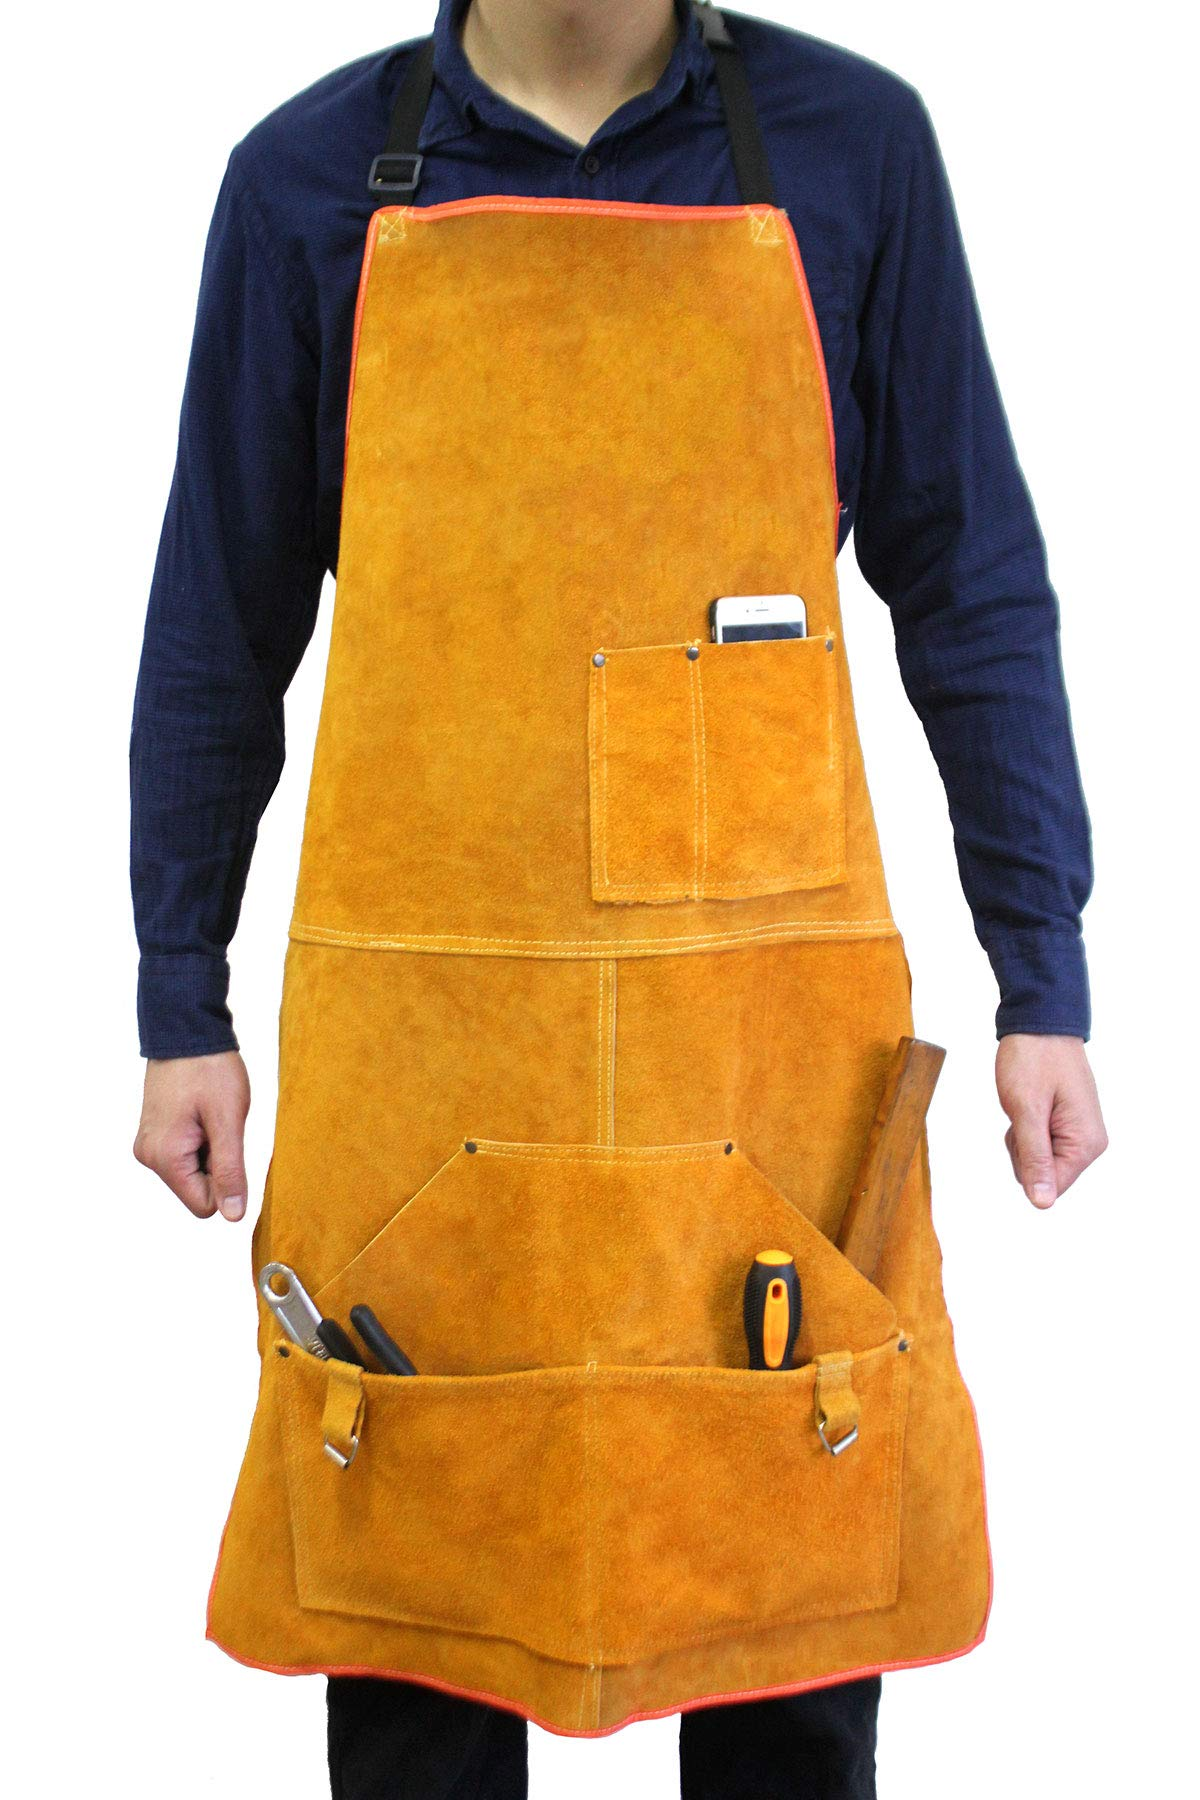 Leather Welding Apron Flame-Resistant Heat Resistant Work Apron Fire Resistant Welding/Welder Smock, 24 x 36 Inch, 6 Pockets by Handook (Image #1)